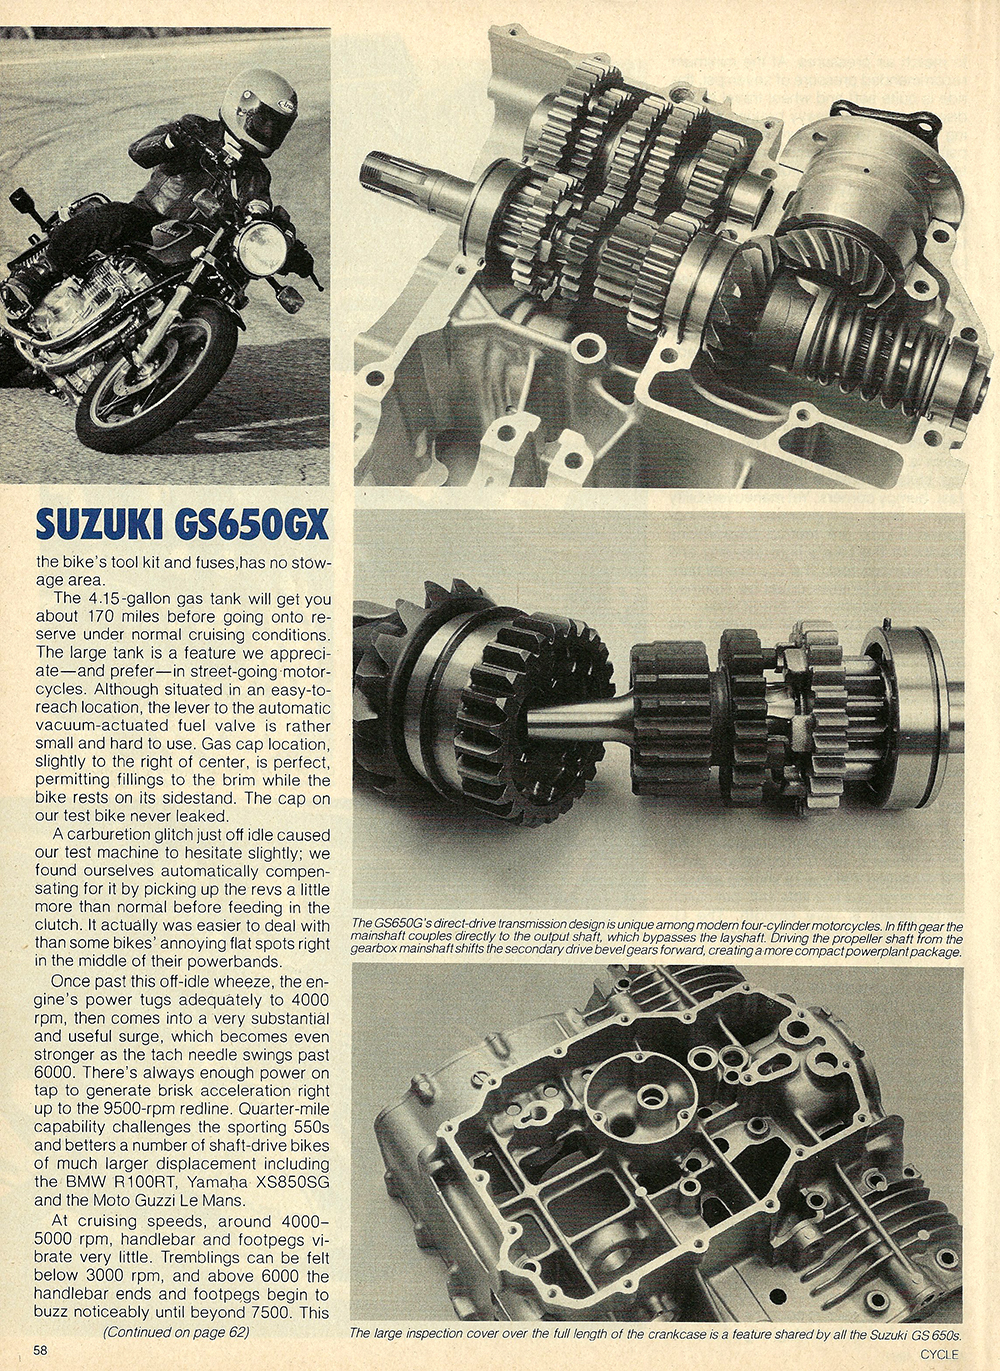 1981 Suzuki GS650 GX road test 05.jpg